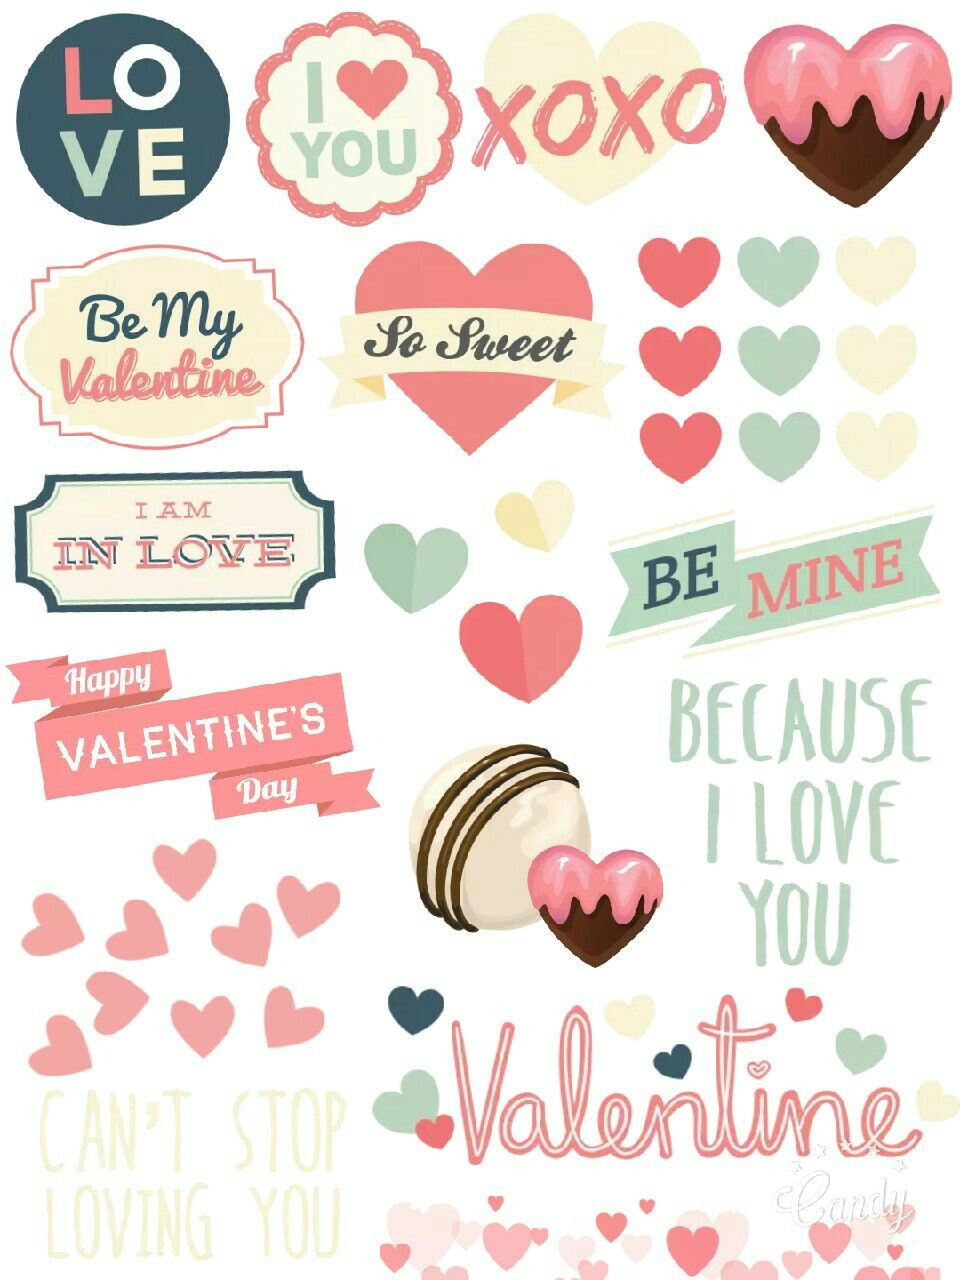 photograph about Valentine Stickers Printable called Pastel Valentine - Sticker Printable #Valentineday#take pleasure in